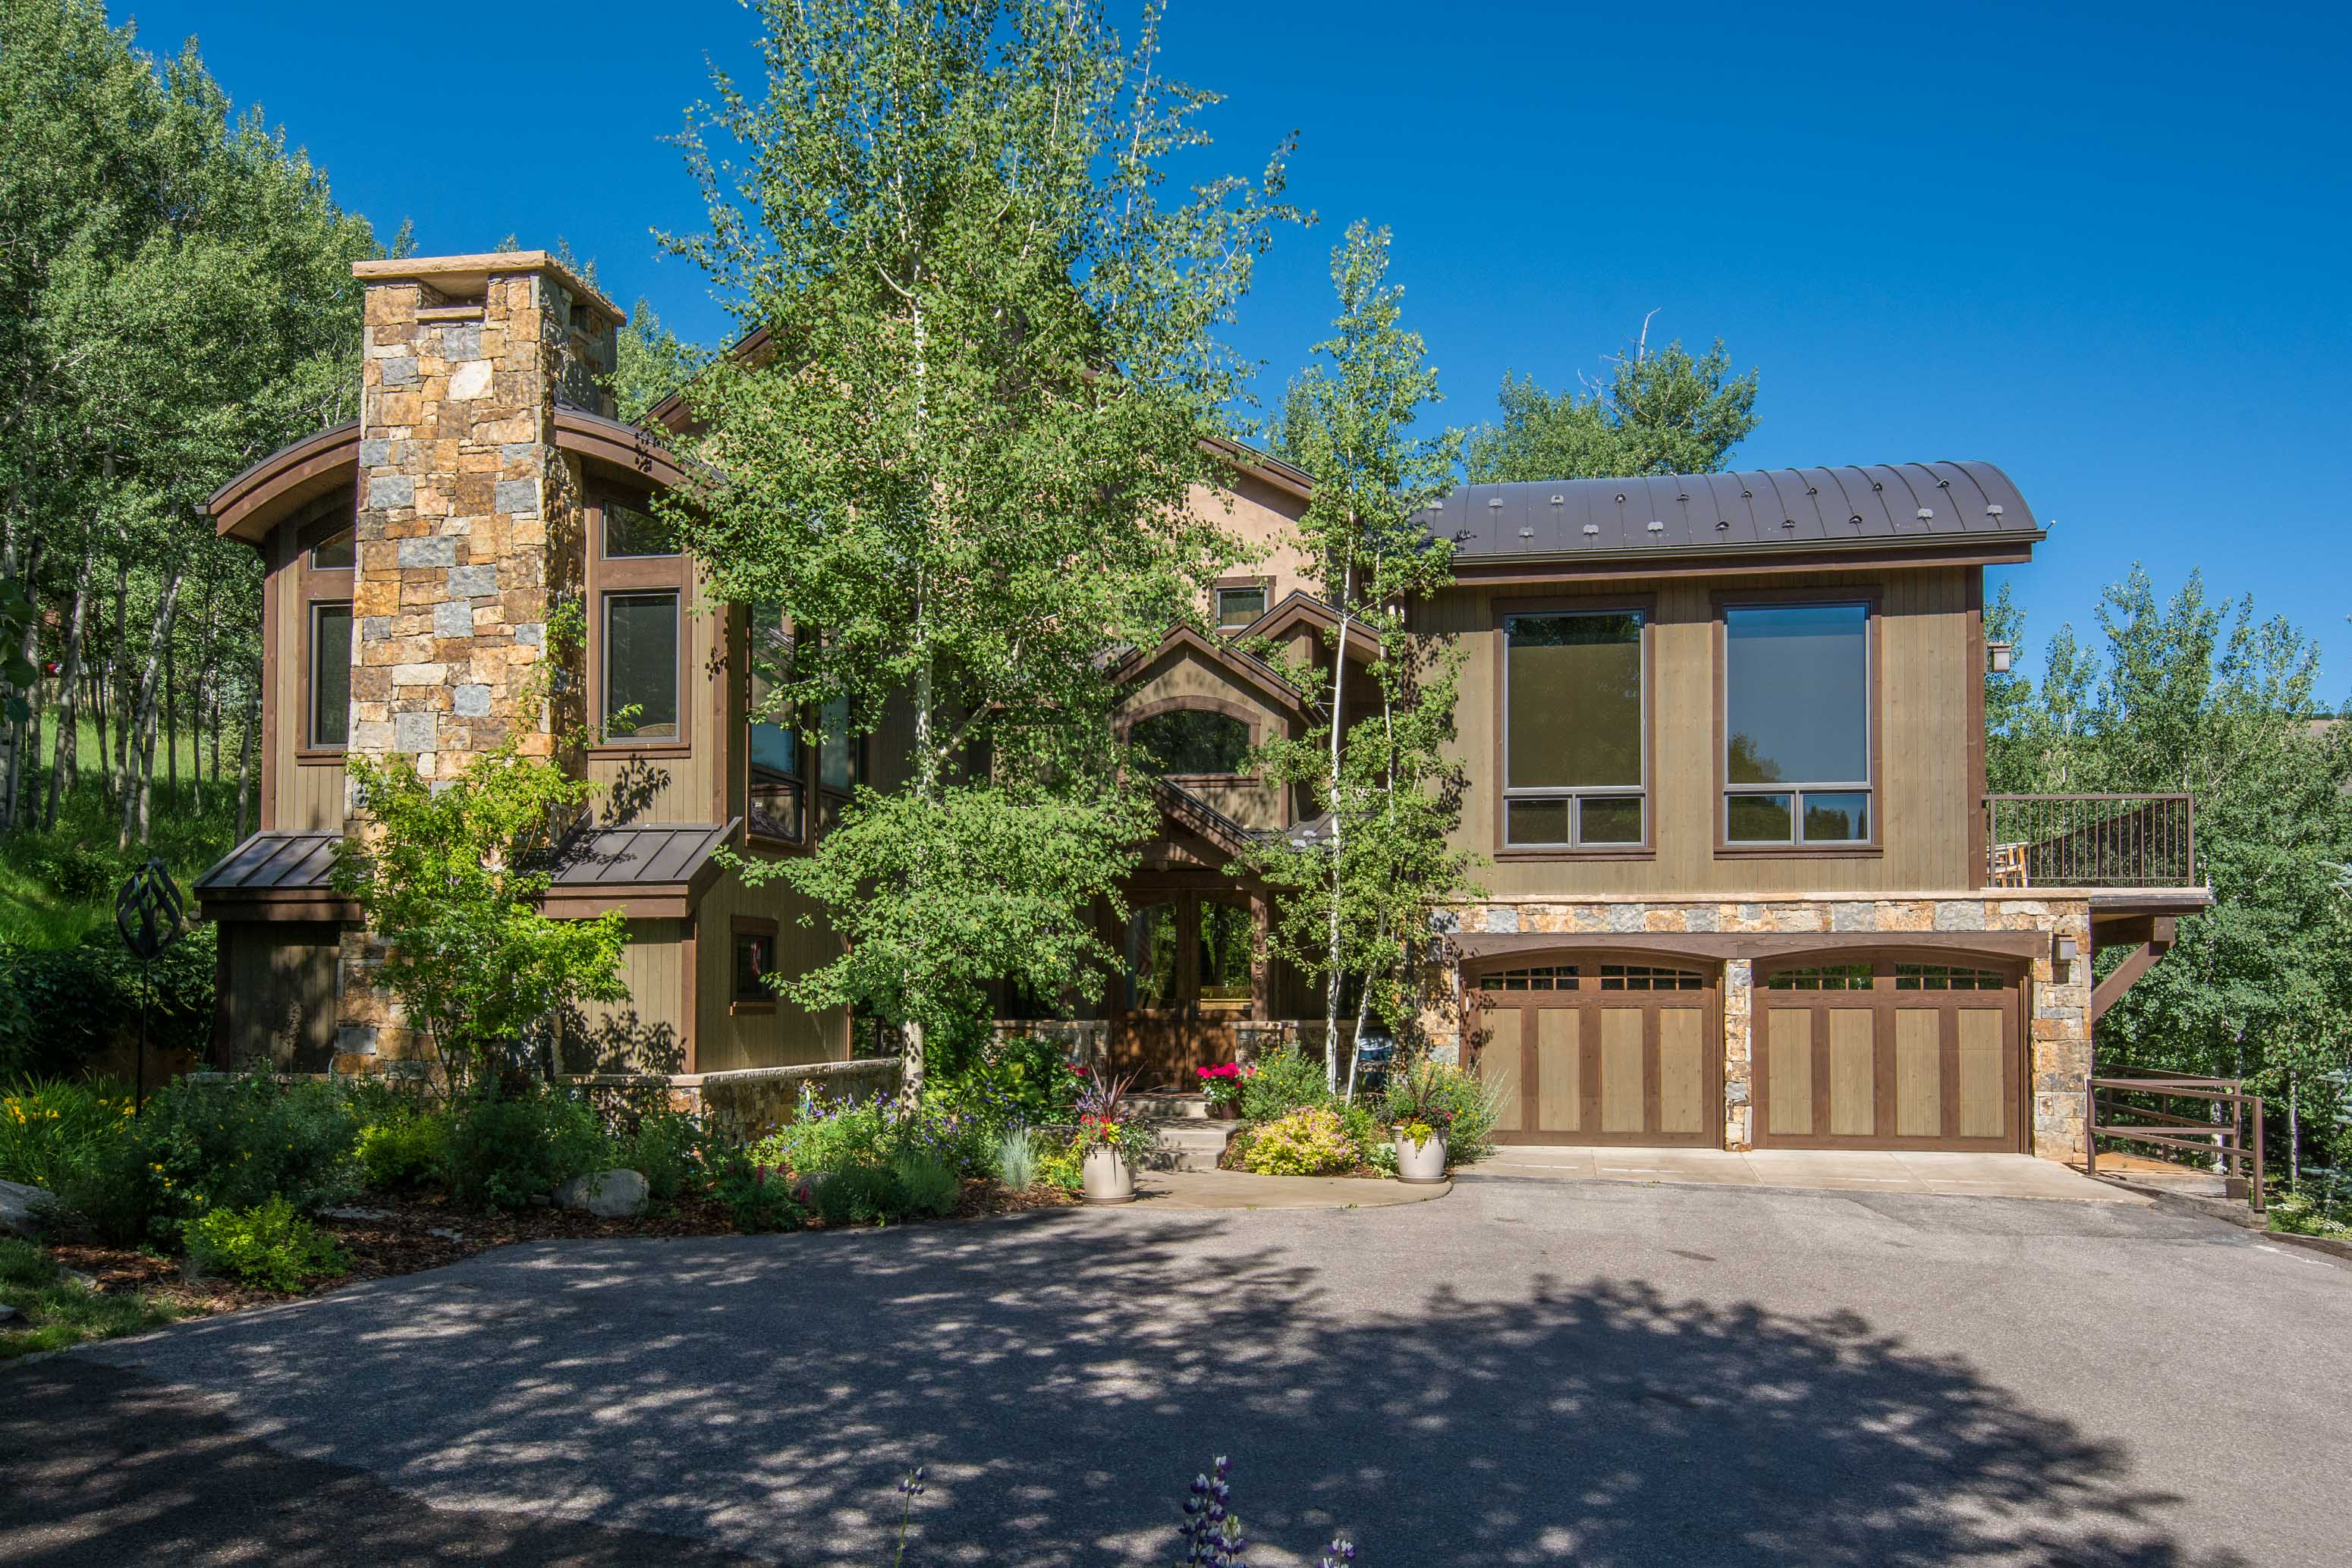 Single Family Home for Sale at One-Of-A-Kind Ski Home 435 Faraway Snowmass Village, Colorado, 81615 United States